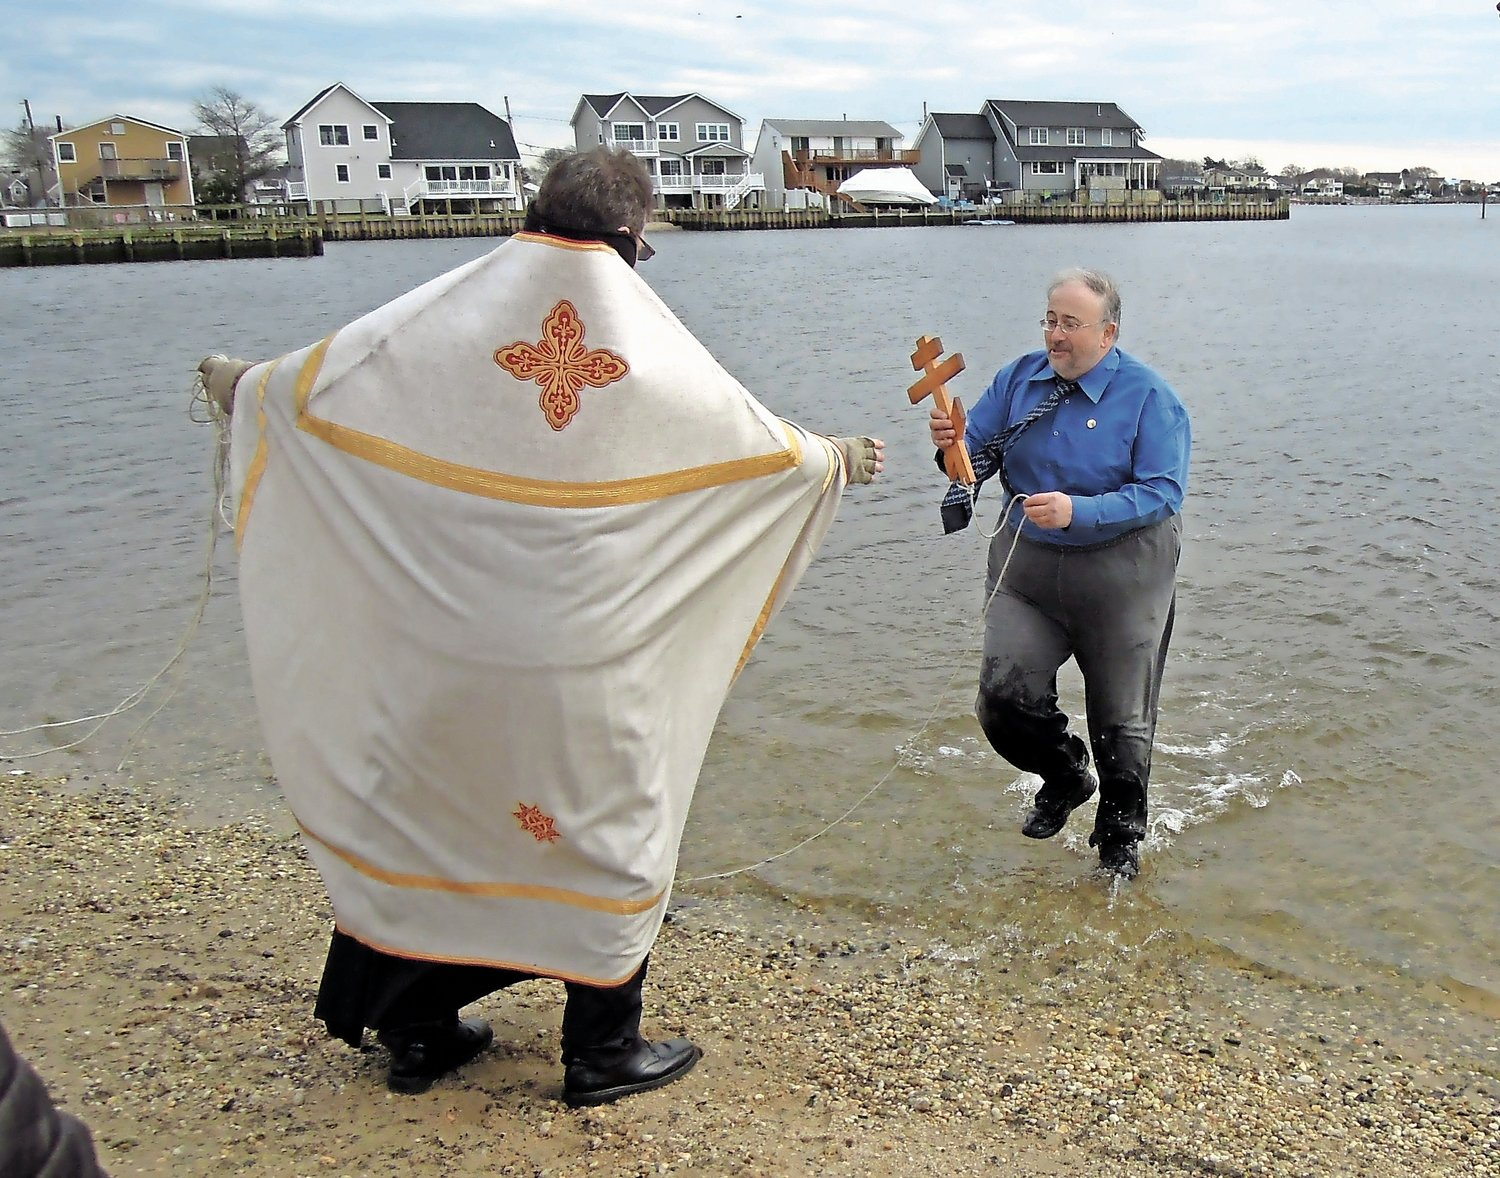 On the third time, a parishioner dashed into the water to retrieve the cross.